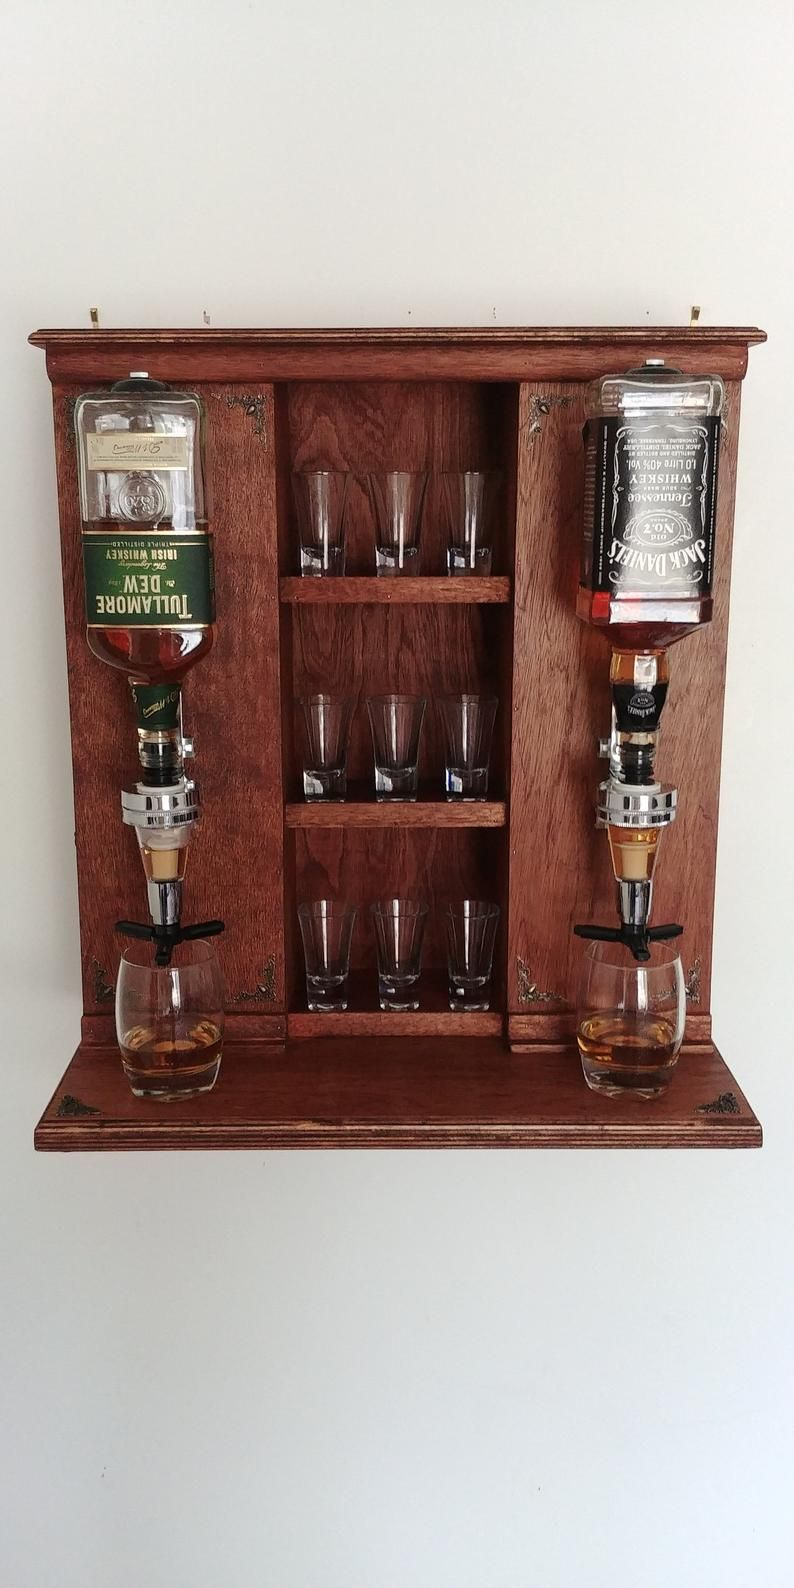 Whiskey Bar Mini Baralcohol Dispenserwhiskey Standwhiskey Etsy In 2020 Whiskey Bar Liquor Storage Kegerator Diy